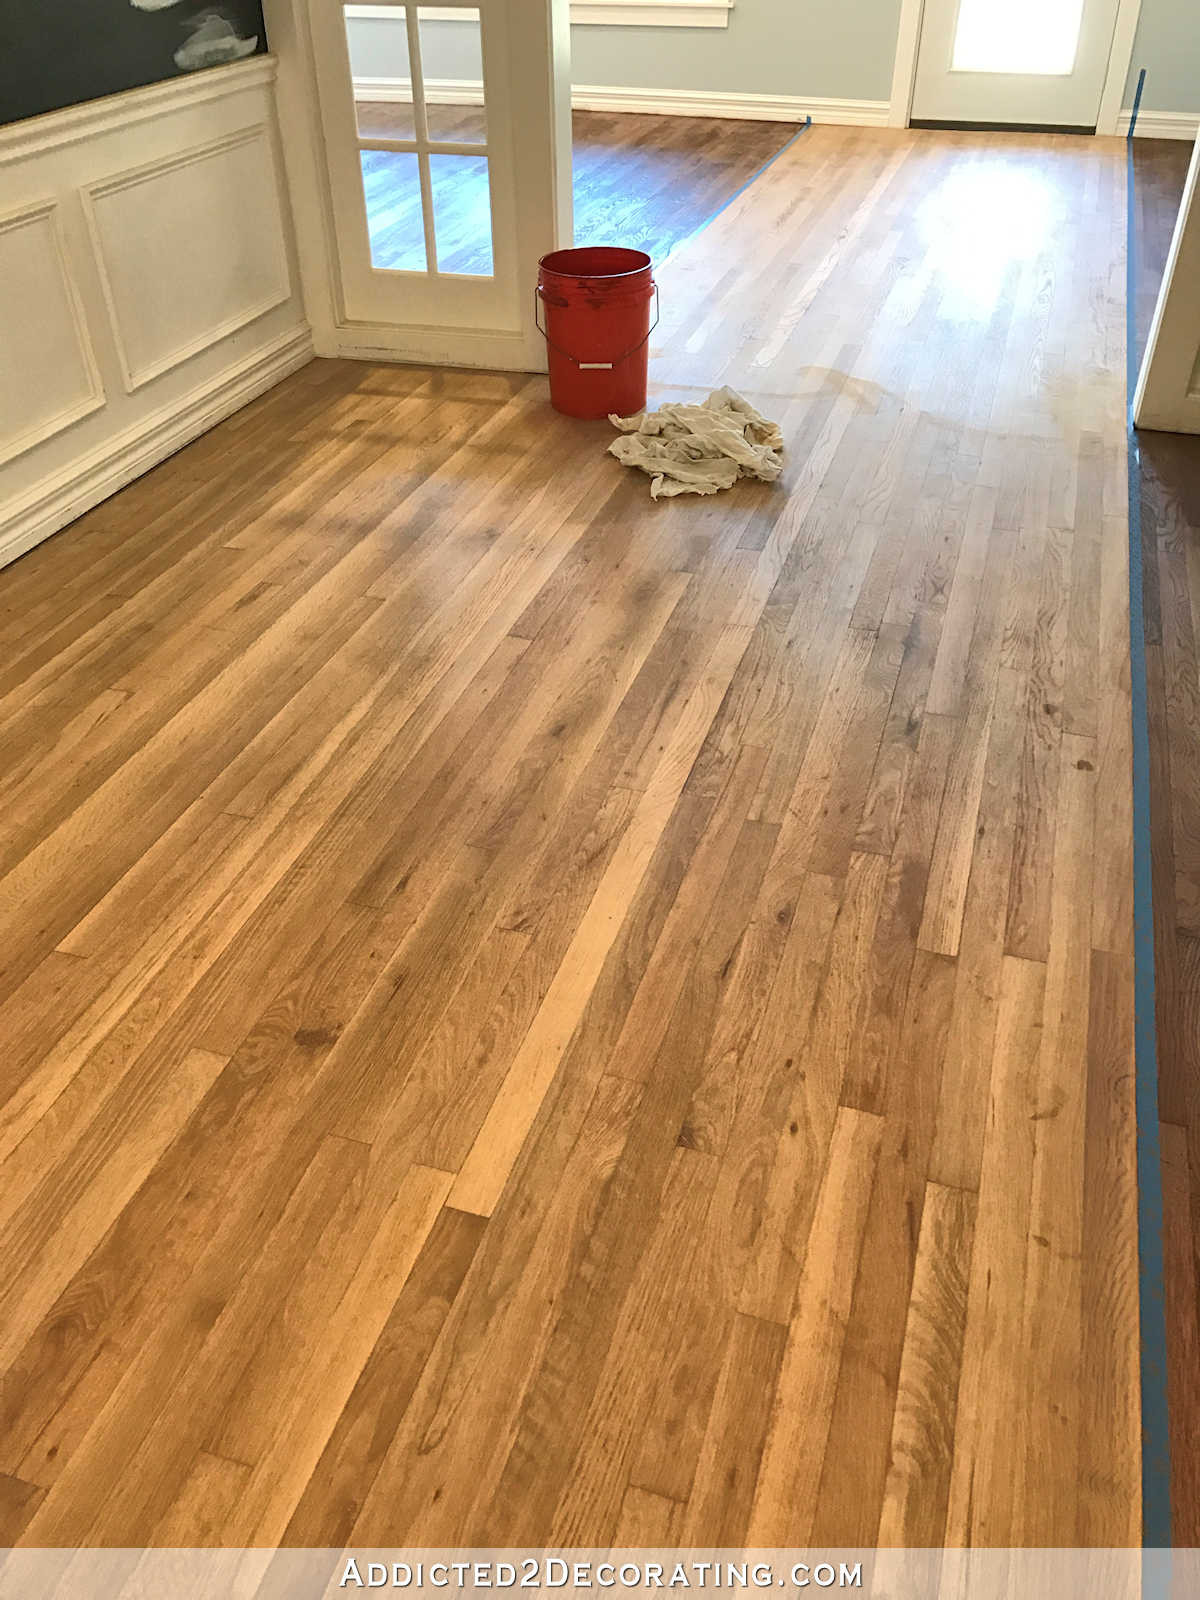 hardwood floor edge sander of adventures in staining my red oak hardwood floors products process regarding staining red oak hardwood floors 8 entryway and music room wood conditioner